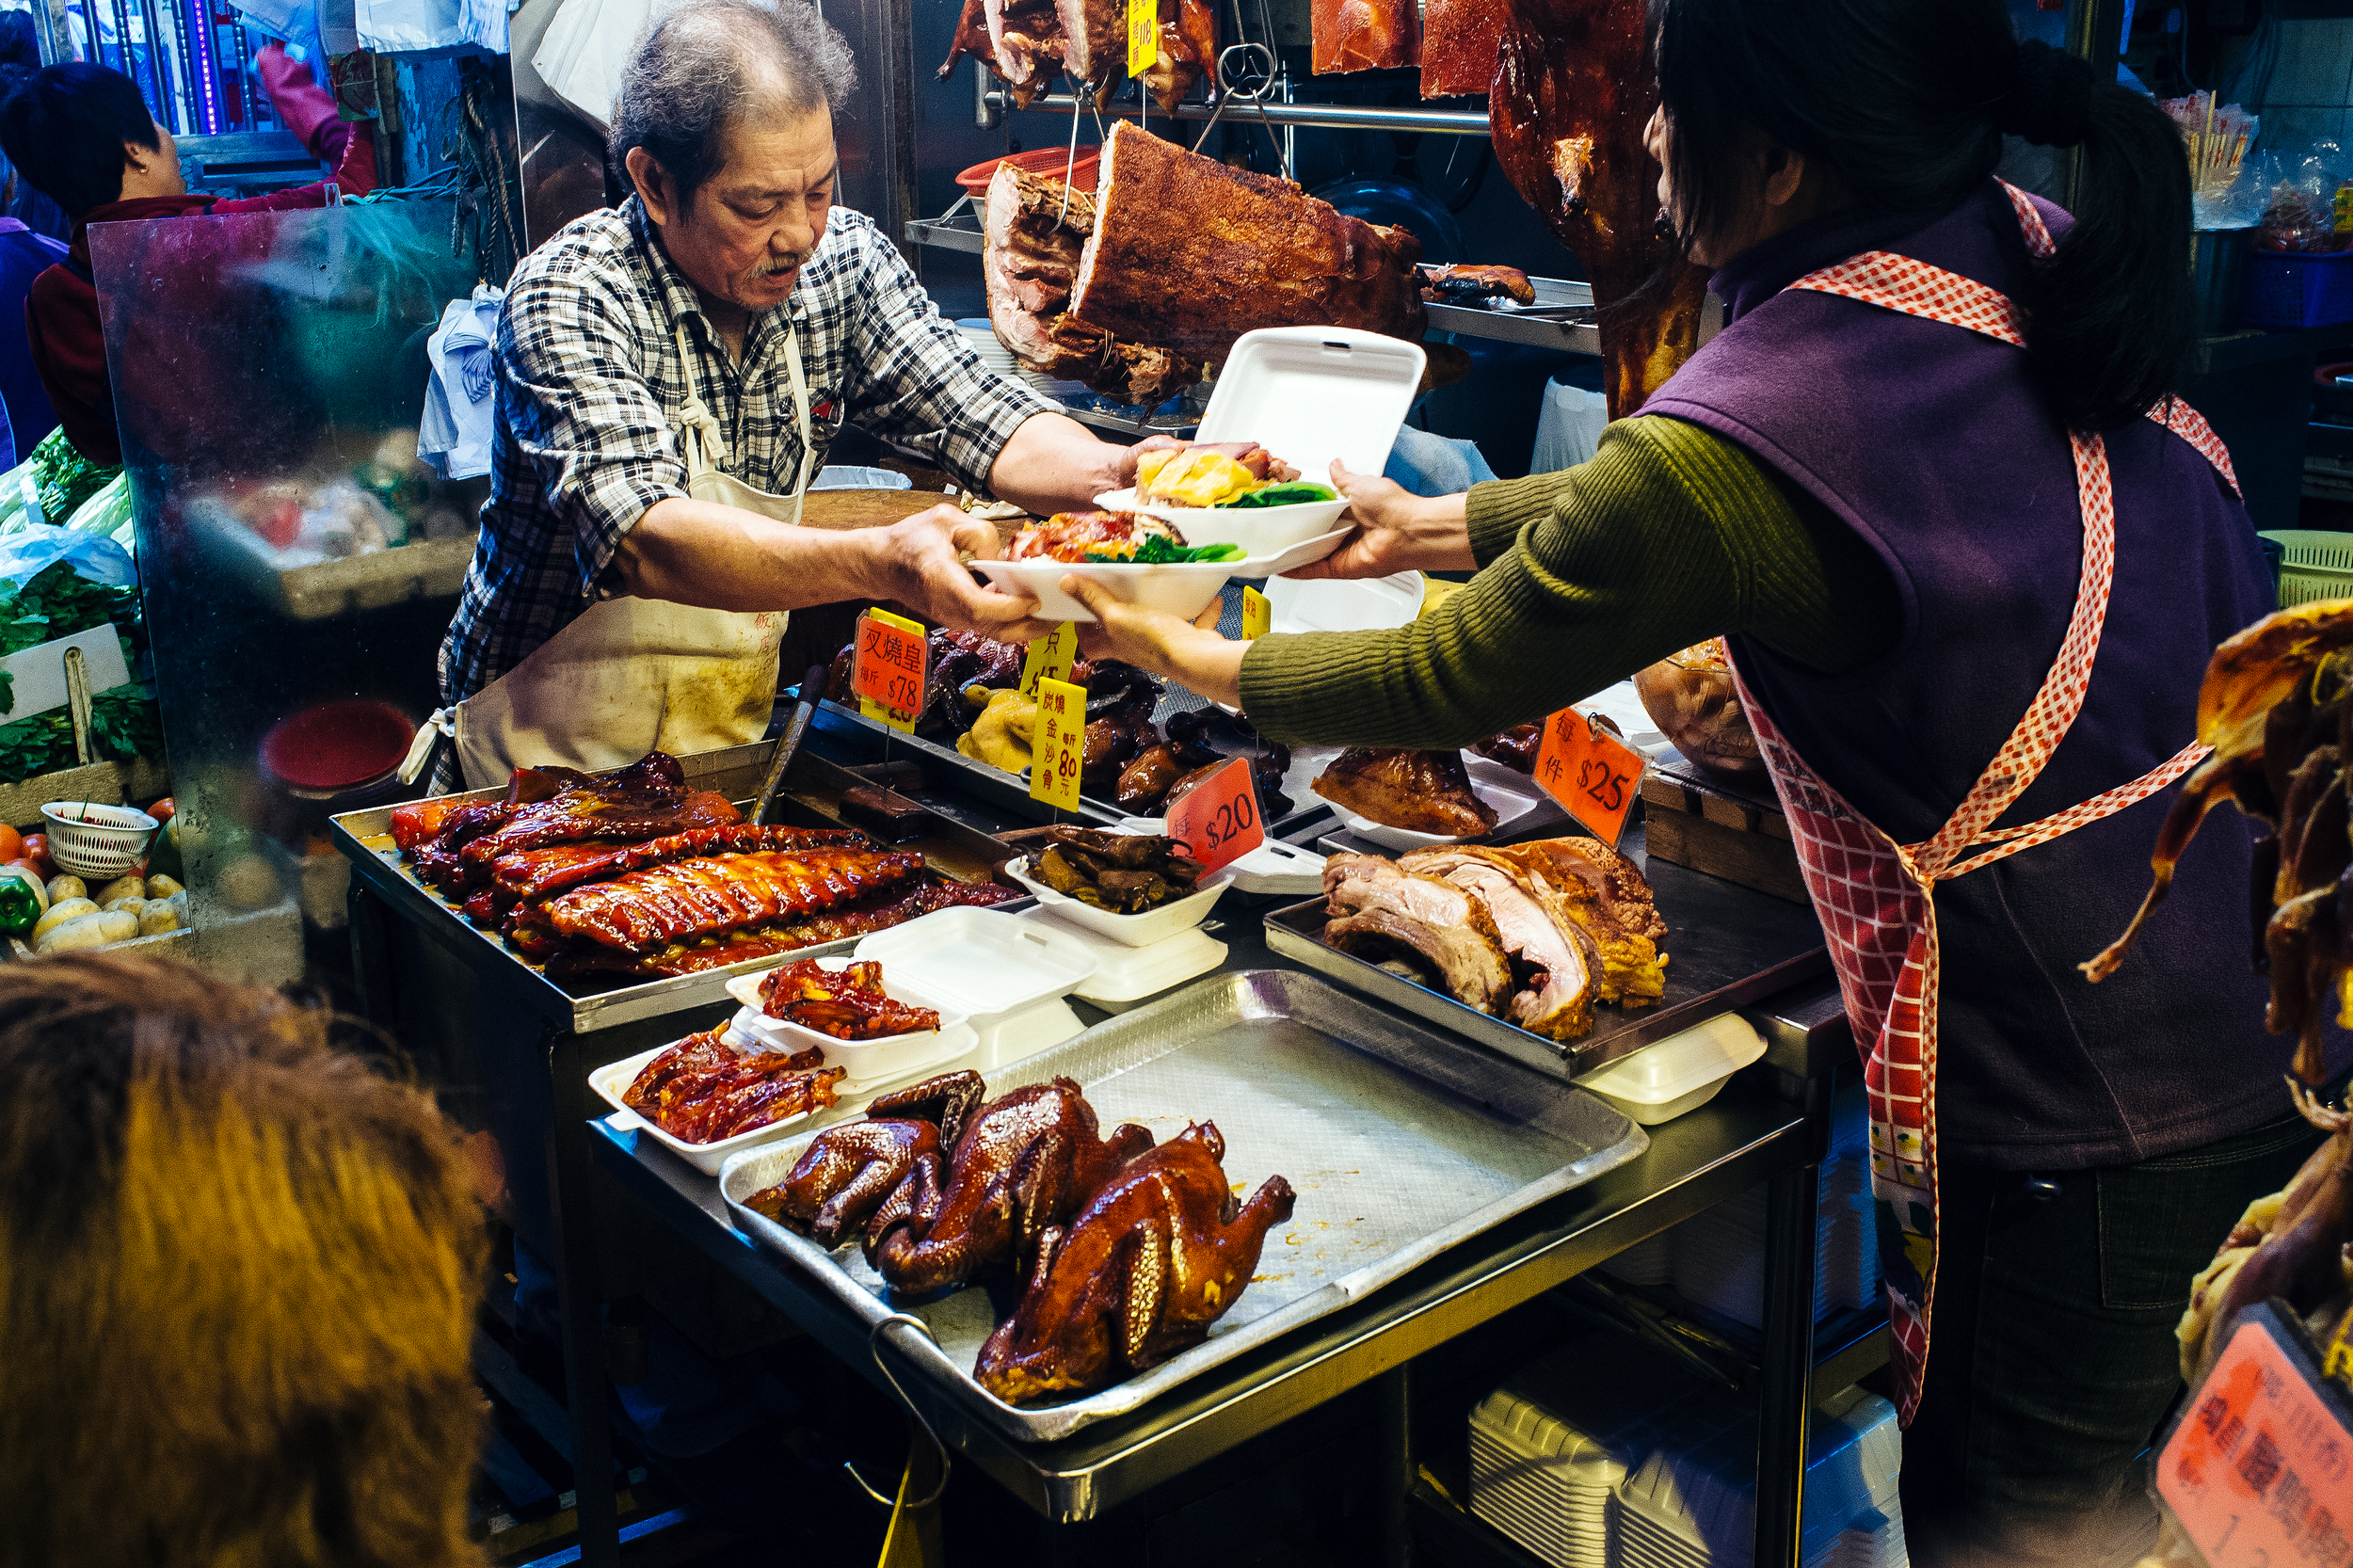 Every market has a person selling containers of assorted cooked meats.